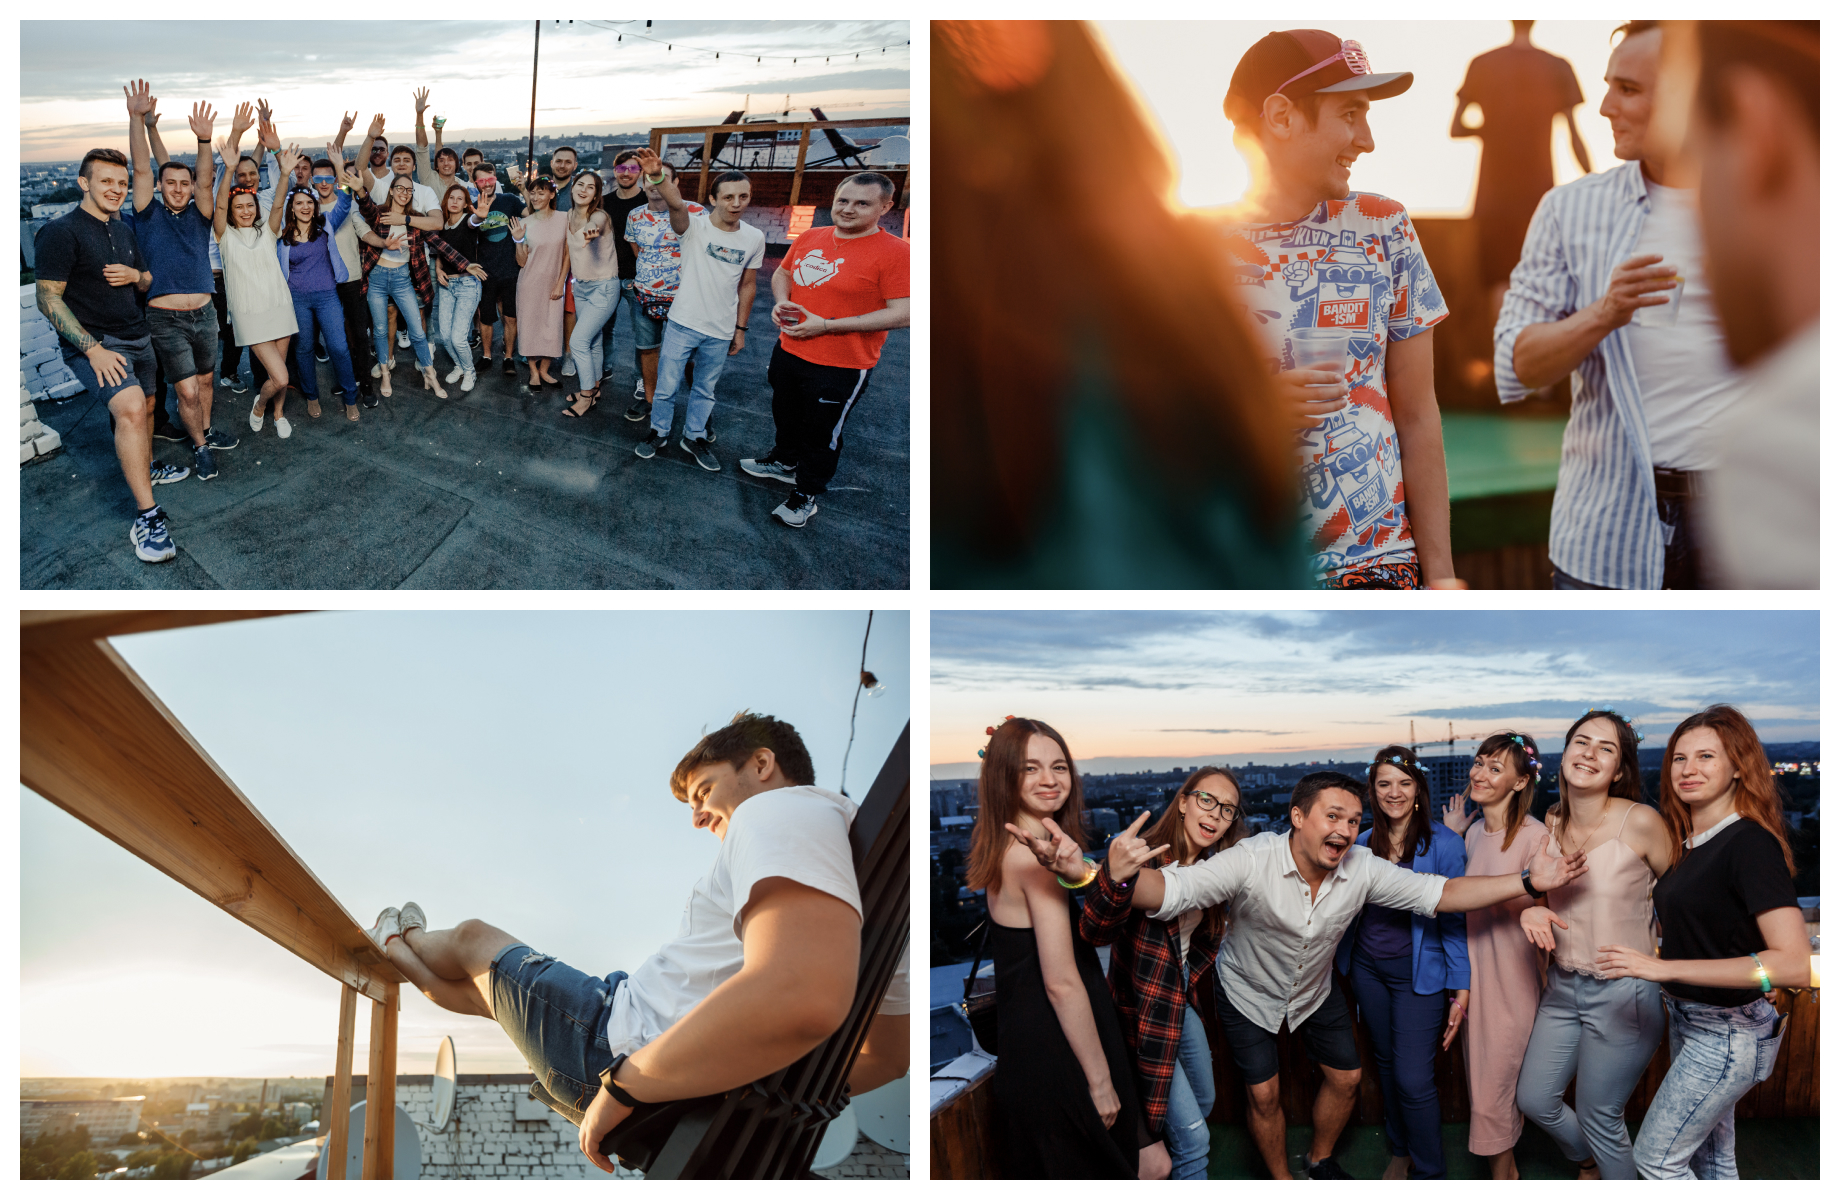 Codica team organized an awesome roof party